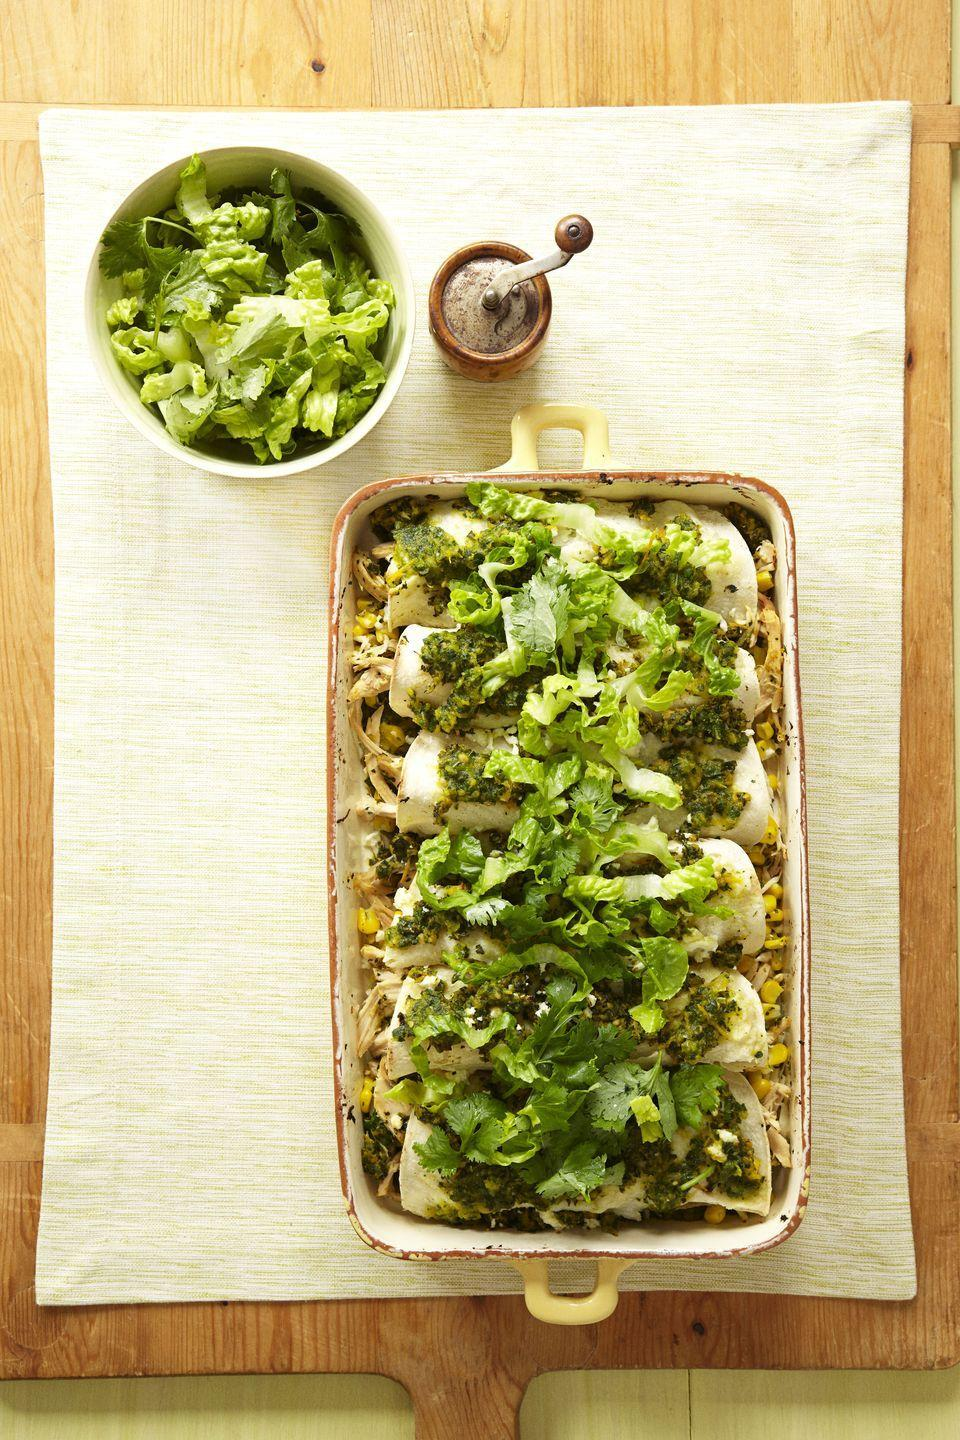 """<p>Think eating healthy means giving up the family favorites? Stop. With a few small changes (like subbing in reduced-fat cheese and adding extra veggies), these enchiladas will become the kids' MVP. </p><p><a href=""""https://www.goodhousekeeping.com/food-recipes/a14314/chicken-corn-enchiladas-recipe-ghk0912/"""" rel=""""nofollow noopener"""" target=""""_blank"""" data-ylk=""""slk:Get the recipe for Chicken and Corn Enchiladas »"""" class=""""link rapid-noclick-resp""""><em>Get the recipe for Chicken and Corn Enchiladas »</em></a> </p>"""